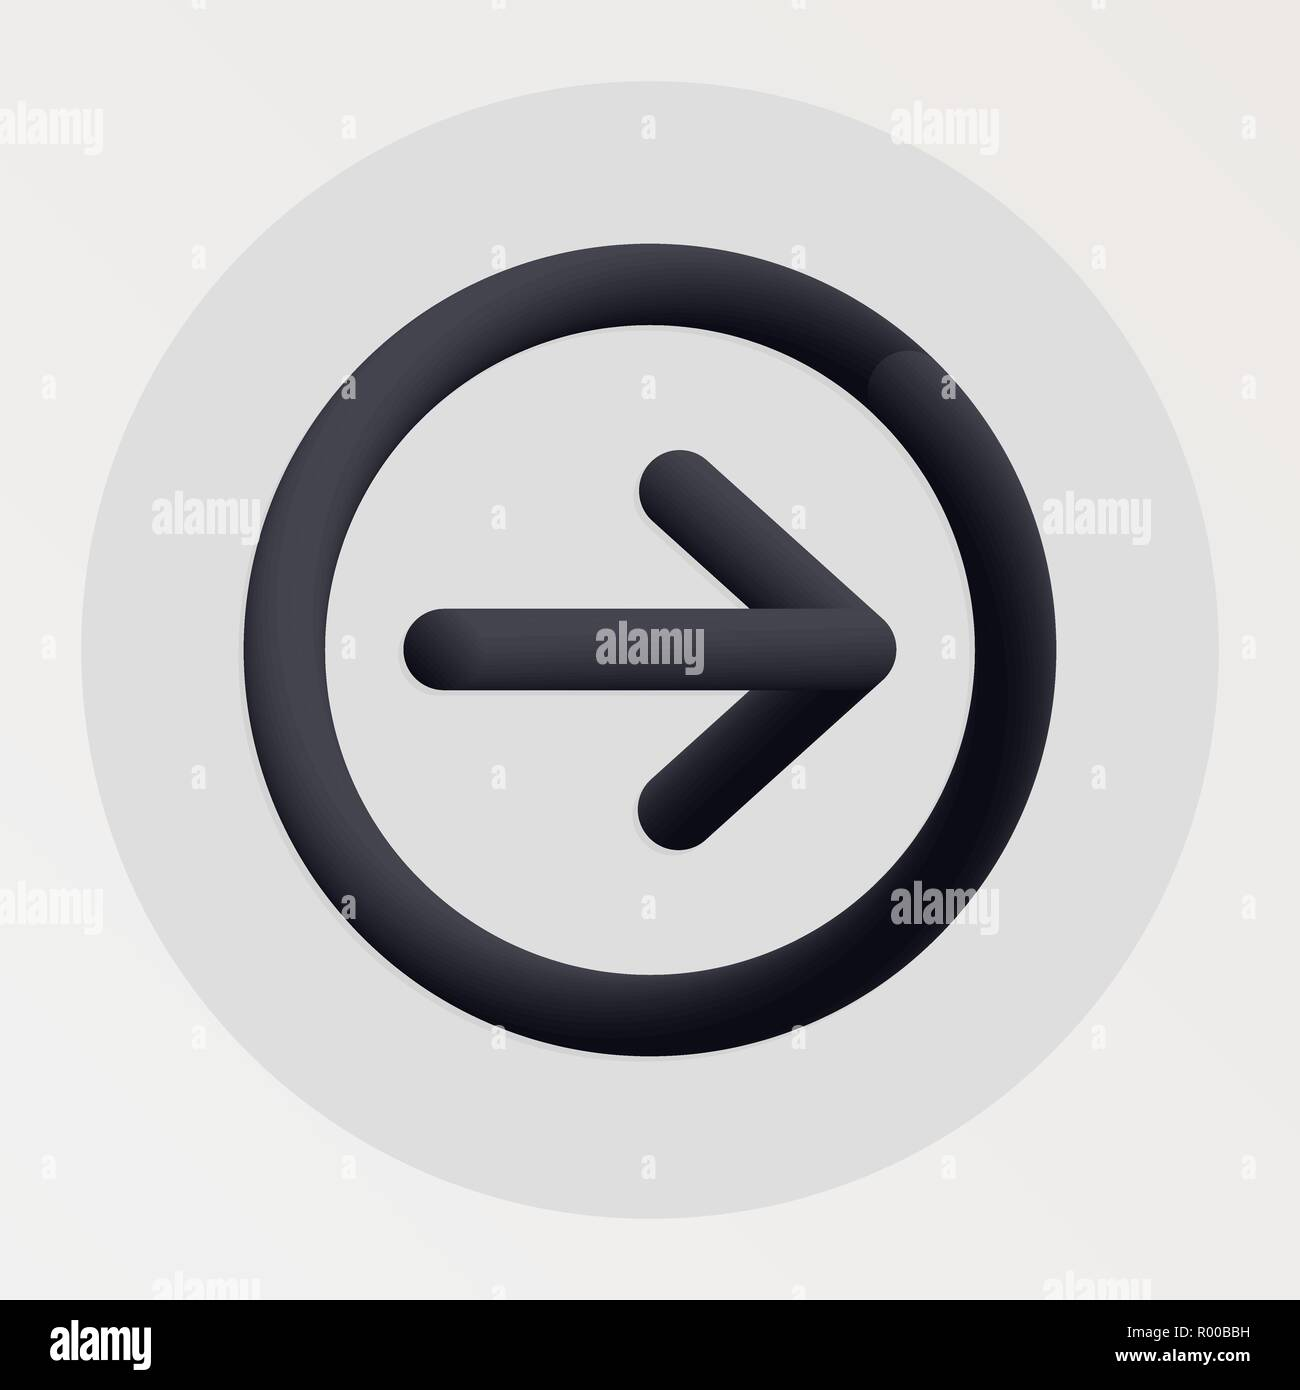 Arrow blended bold black line icon. Vector illustration of arrow shape fluid pictogram in a circle over white background for your design Stock Vector